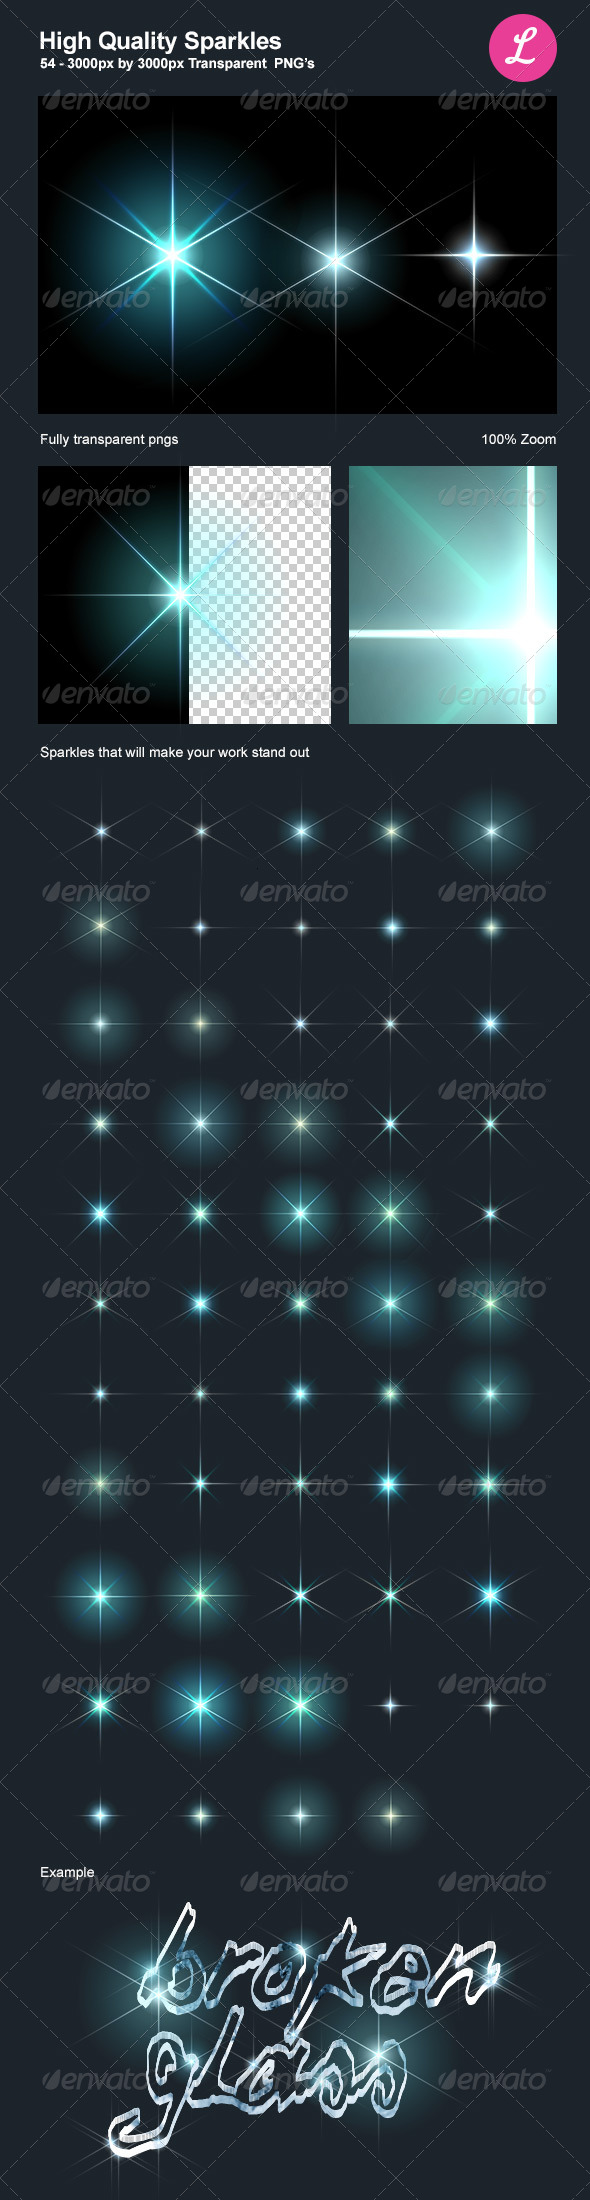 GraphicRiver High Quality Sparkles 4566079